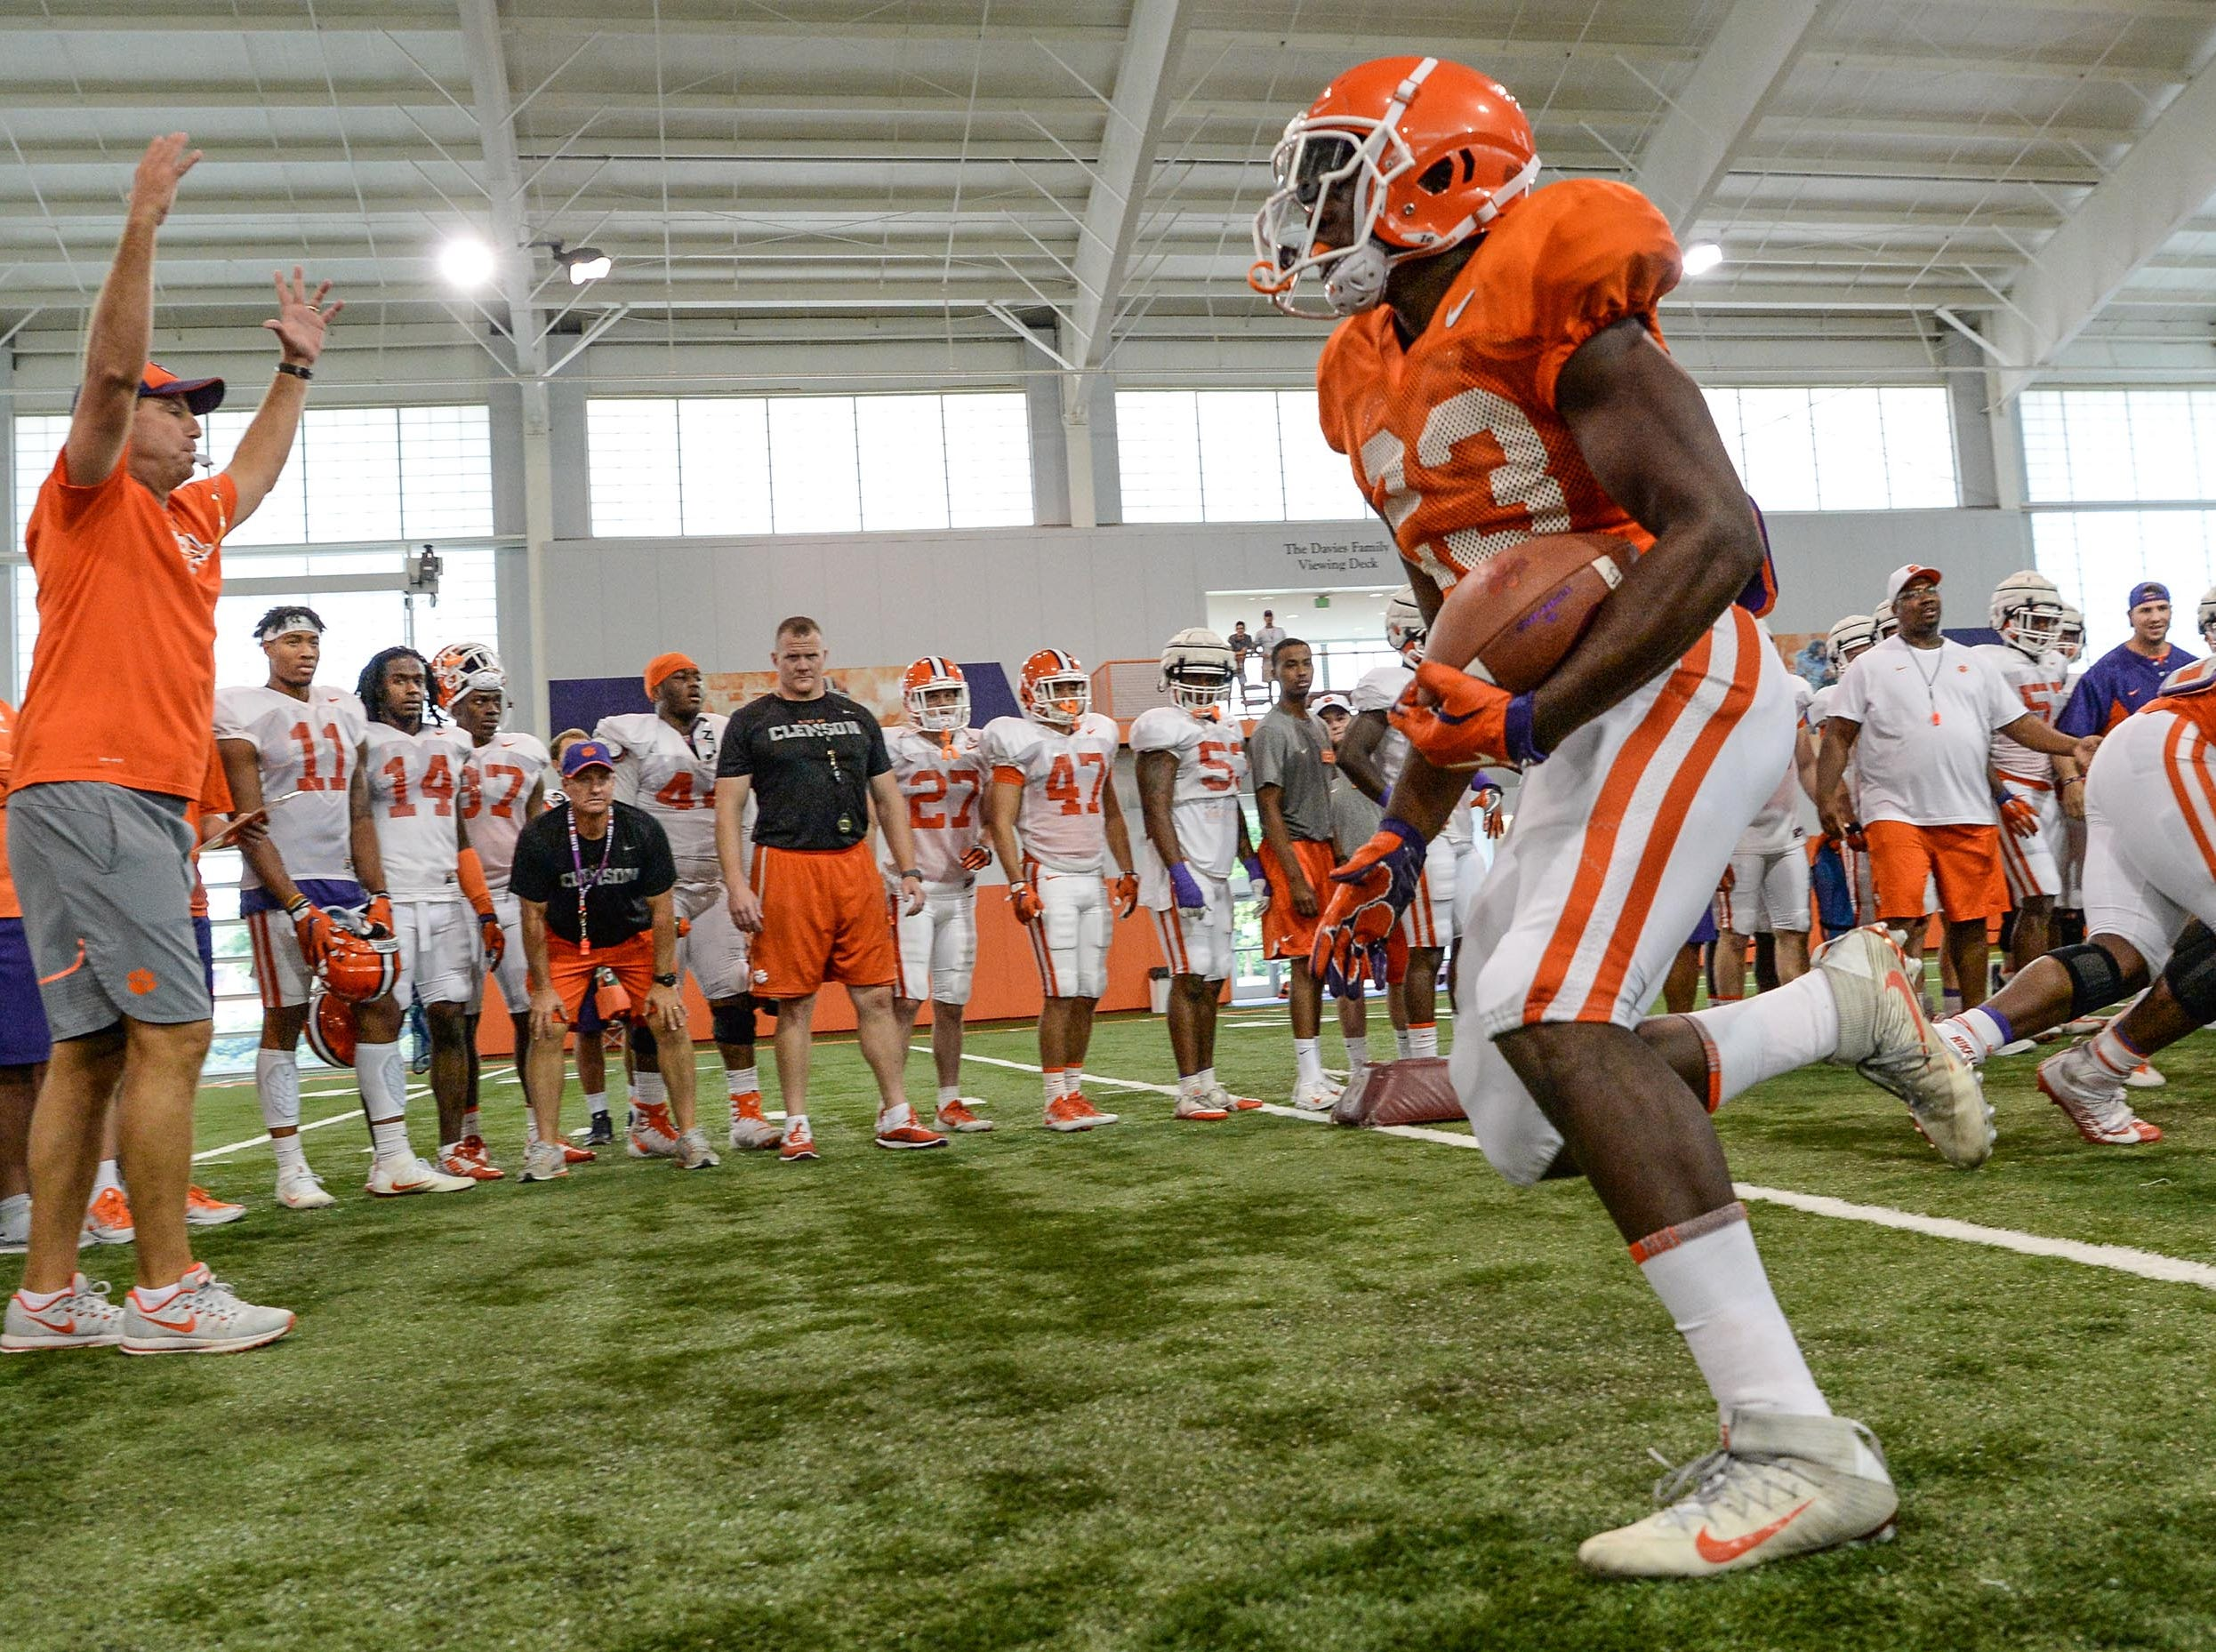 Clemson running back Lyn-J Dixon (23) runs by defenders during fall practice in Clemson on Wednesday.